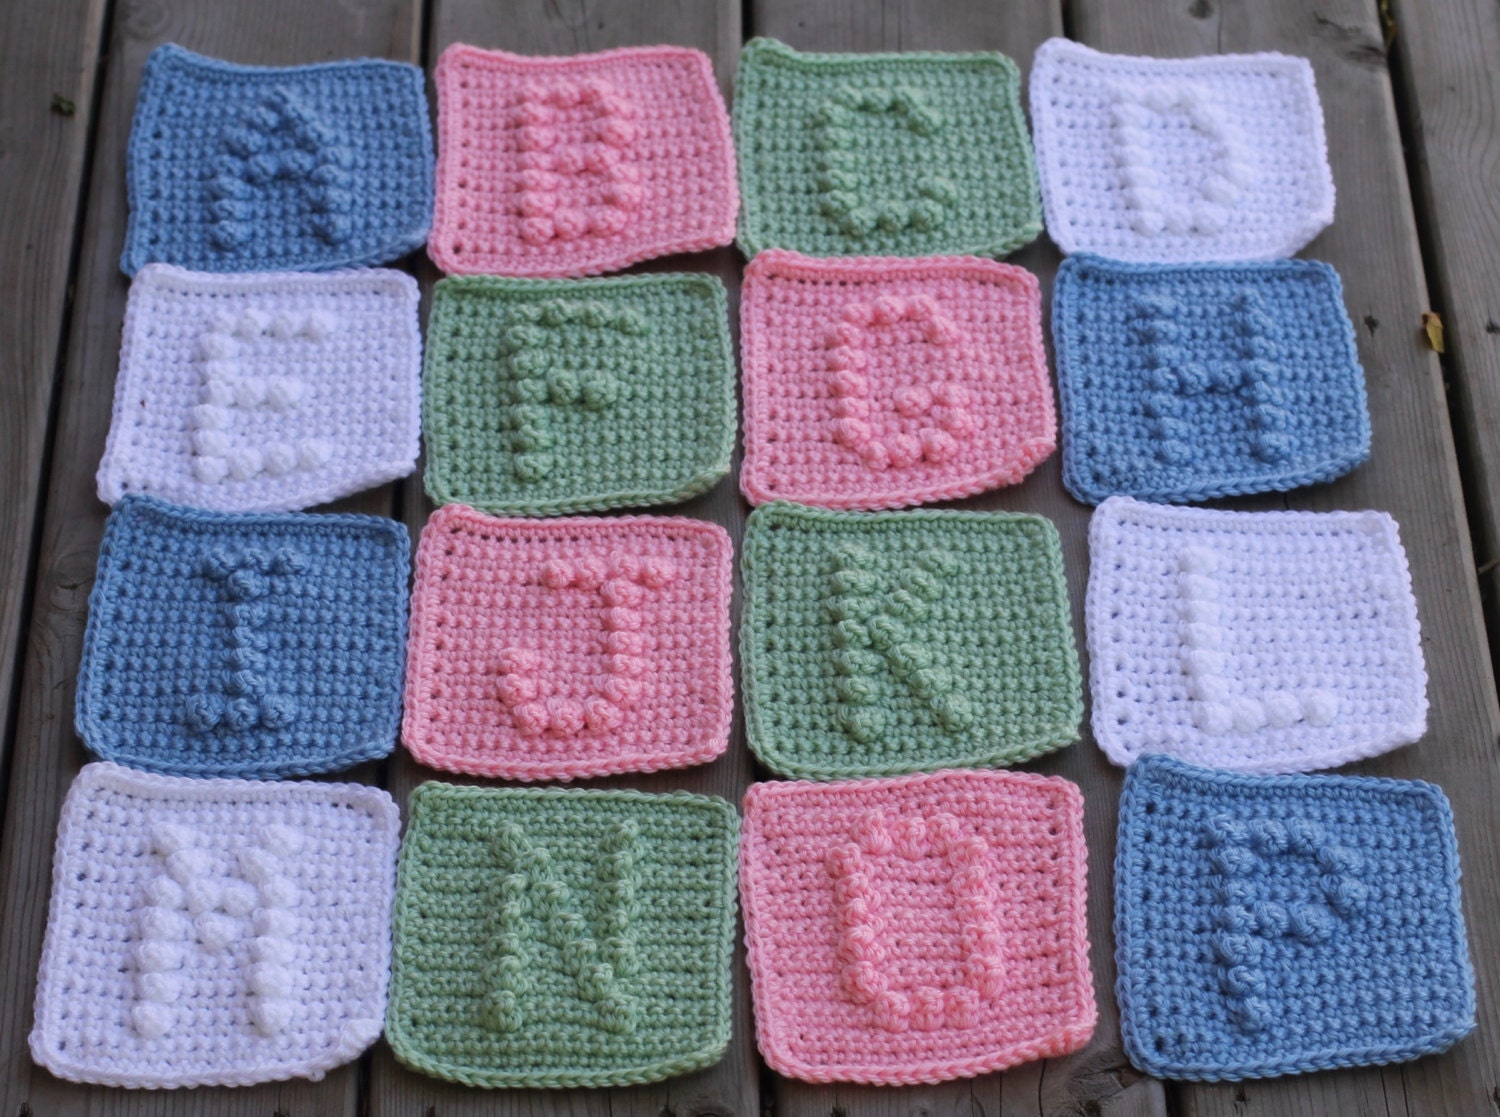 Crochet Pattern For Abc Baby Blanket : UPPER CASE Alphabet Letters A-Z Crochet Pattern with Bonus ...